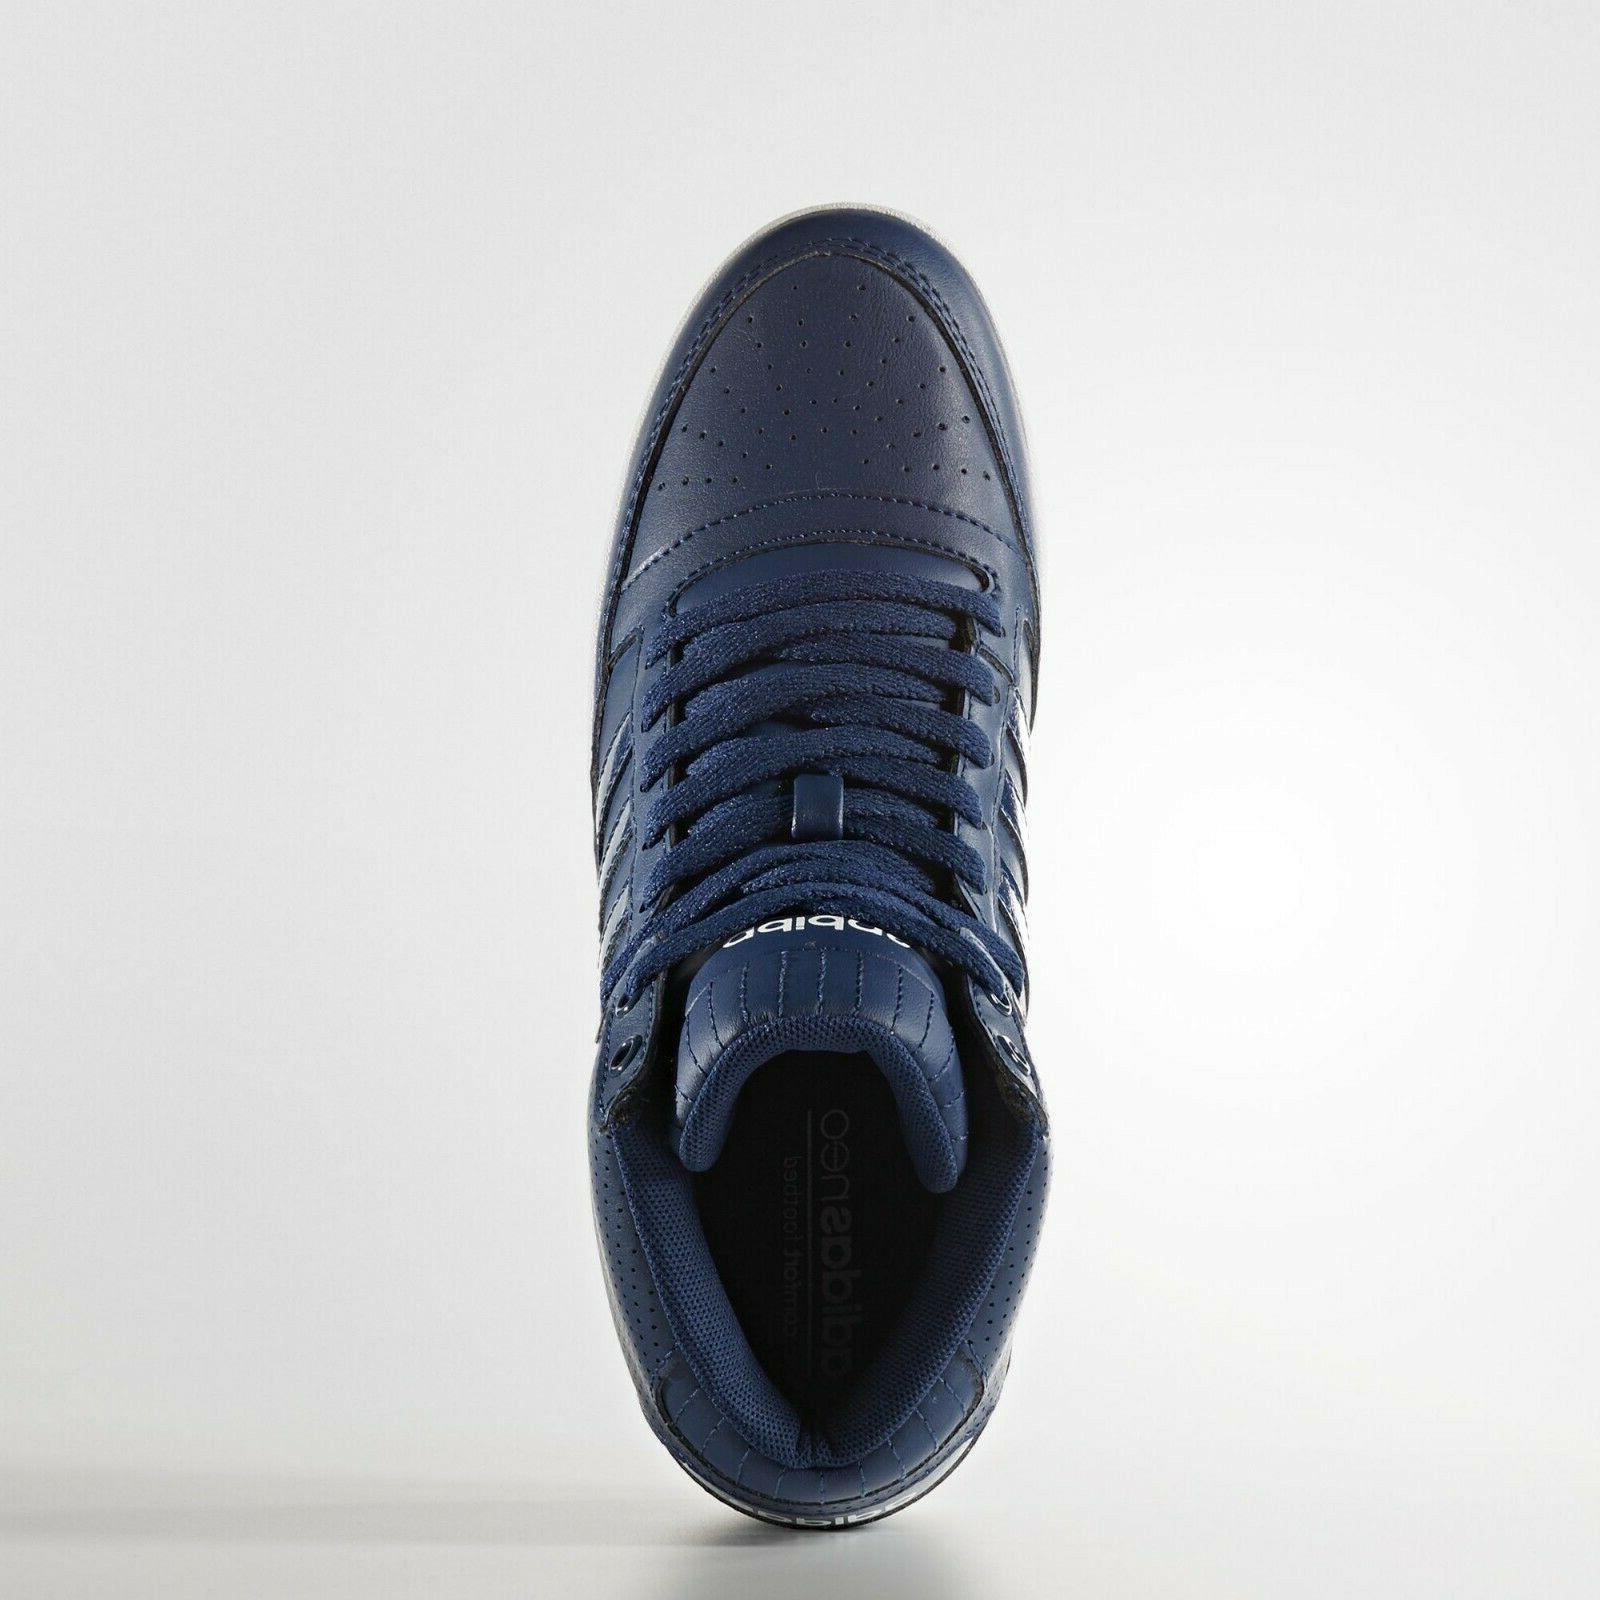 Adidas Originals NEO Navy Blue Wedge Comfort shoes AW3969 all sizes